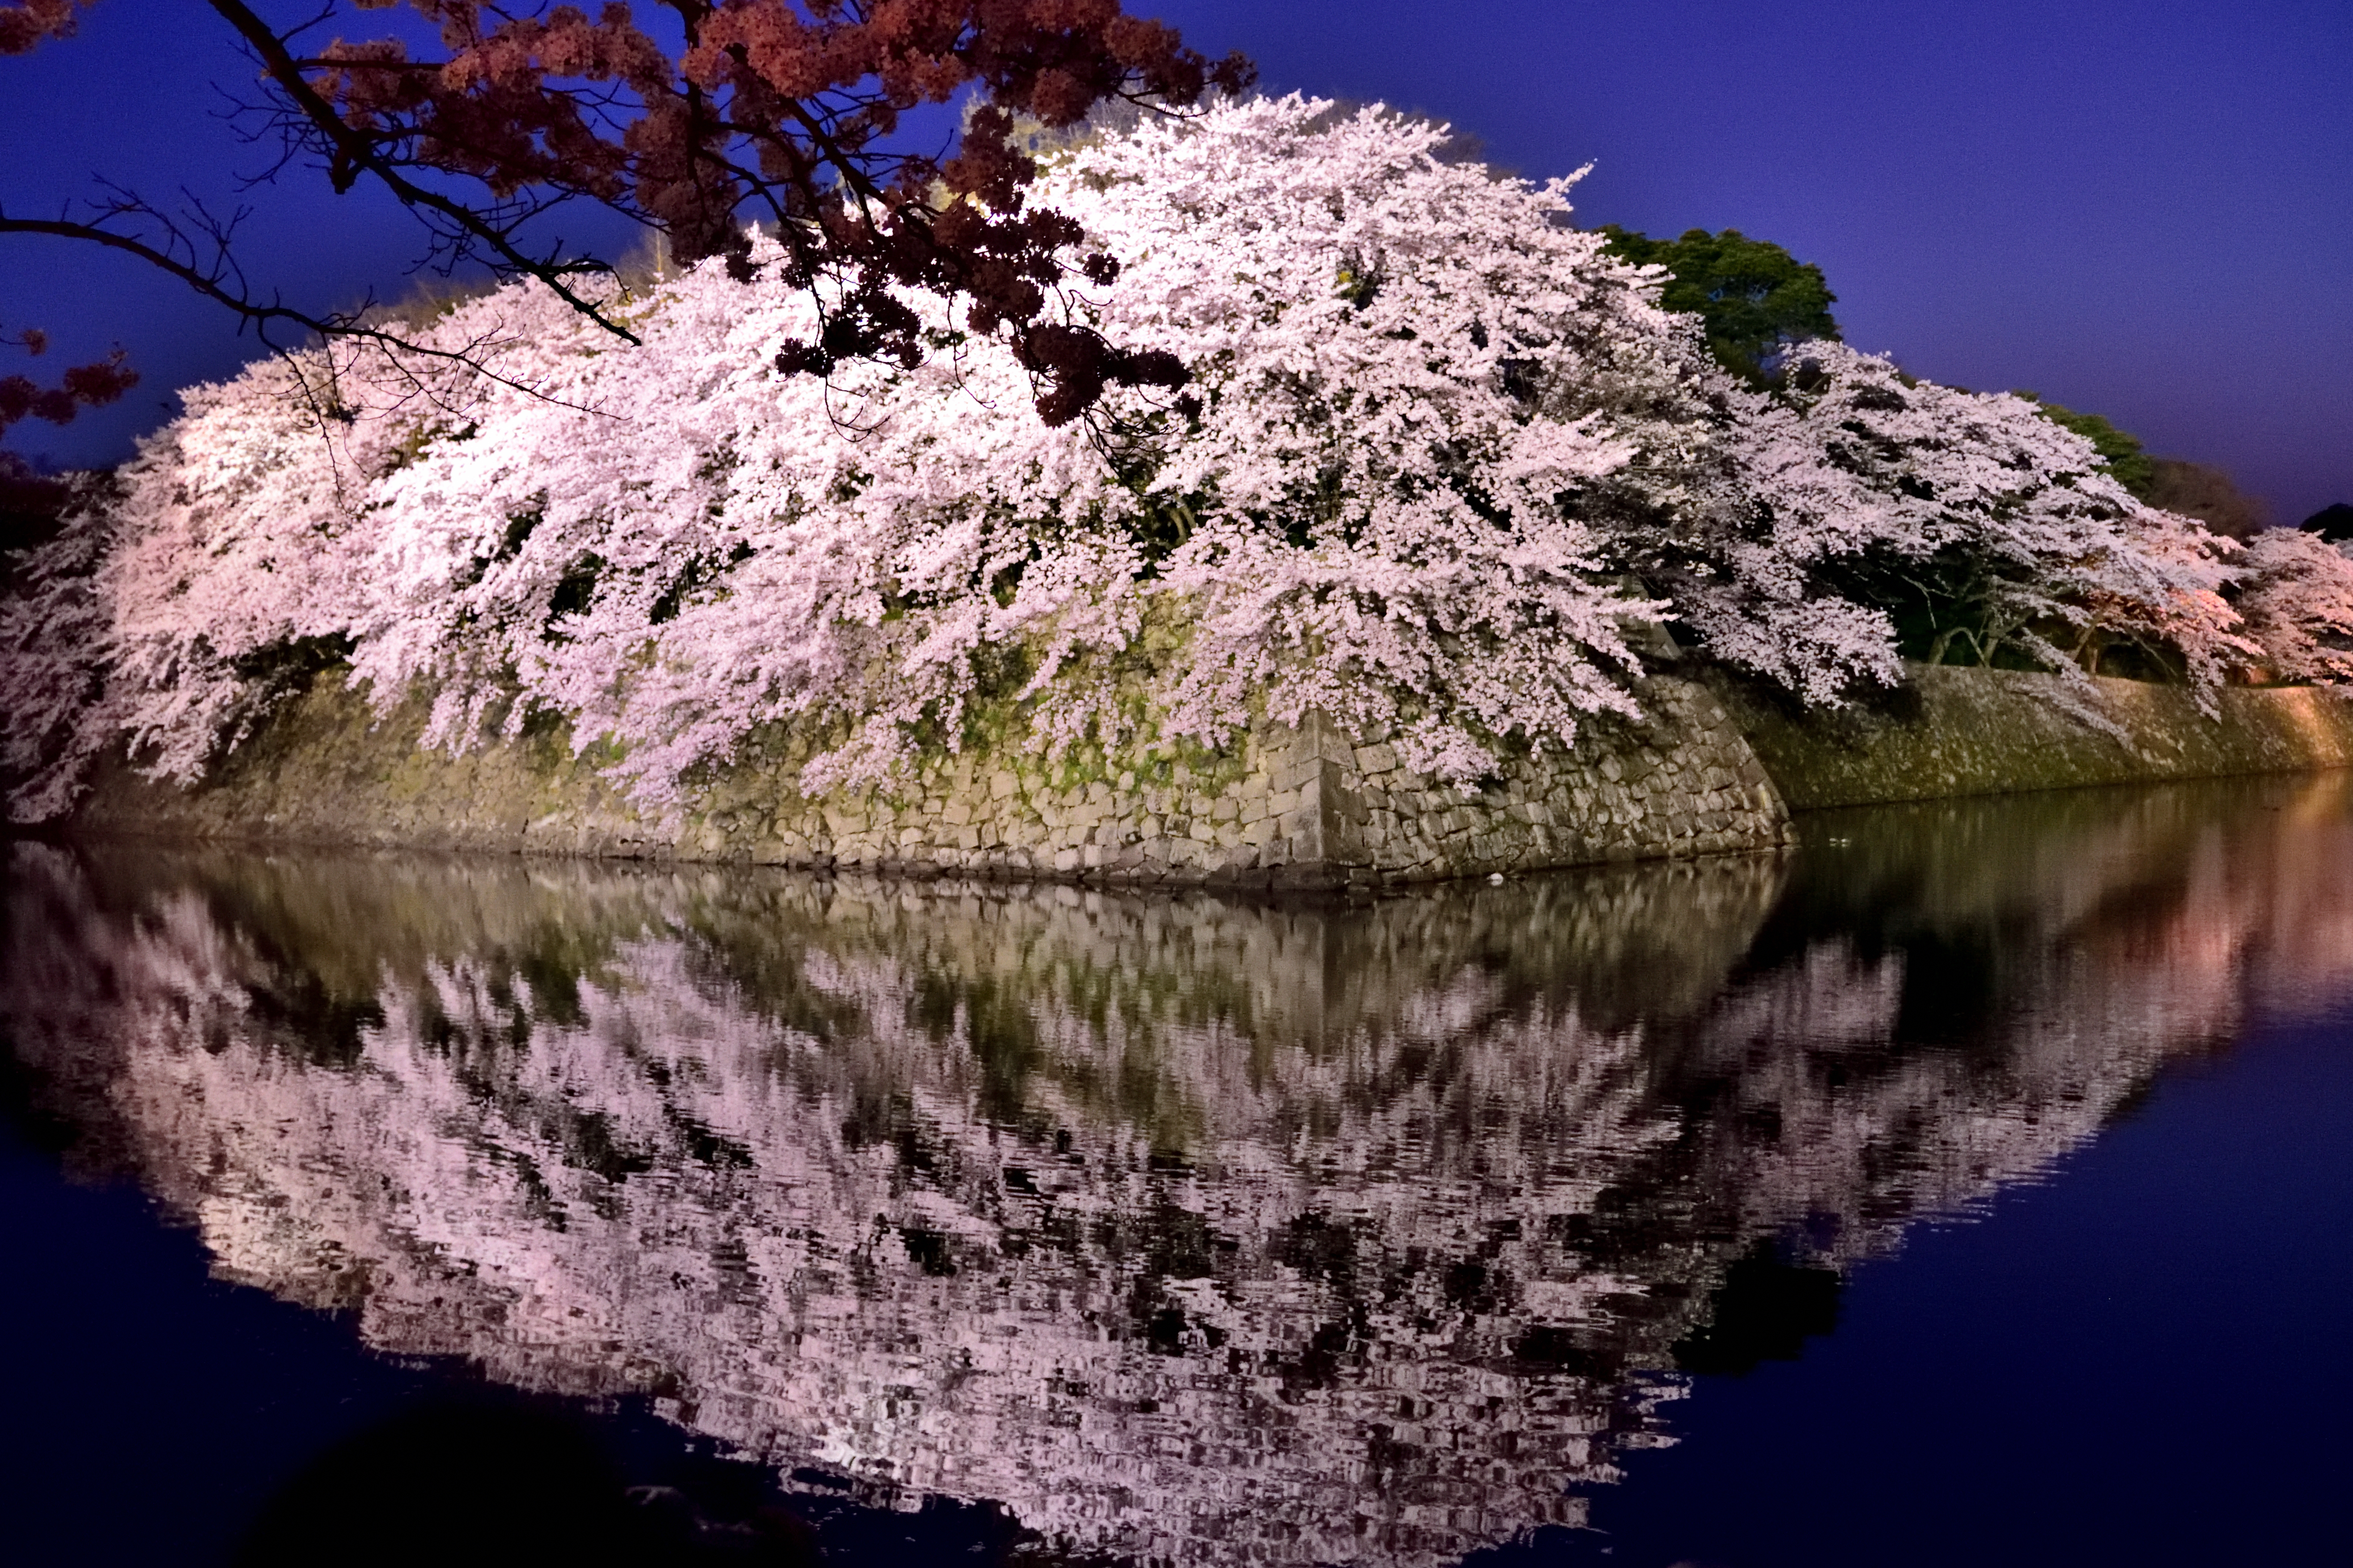 Night cherry blossoms in Hikone castle